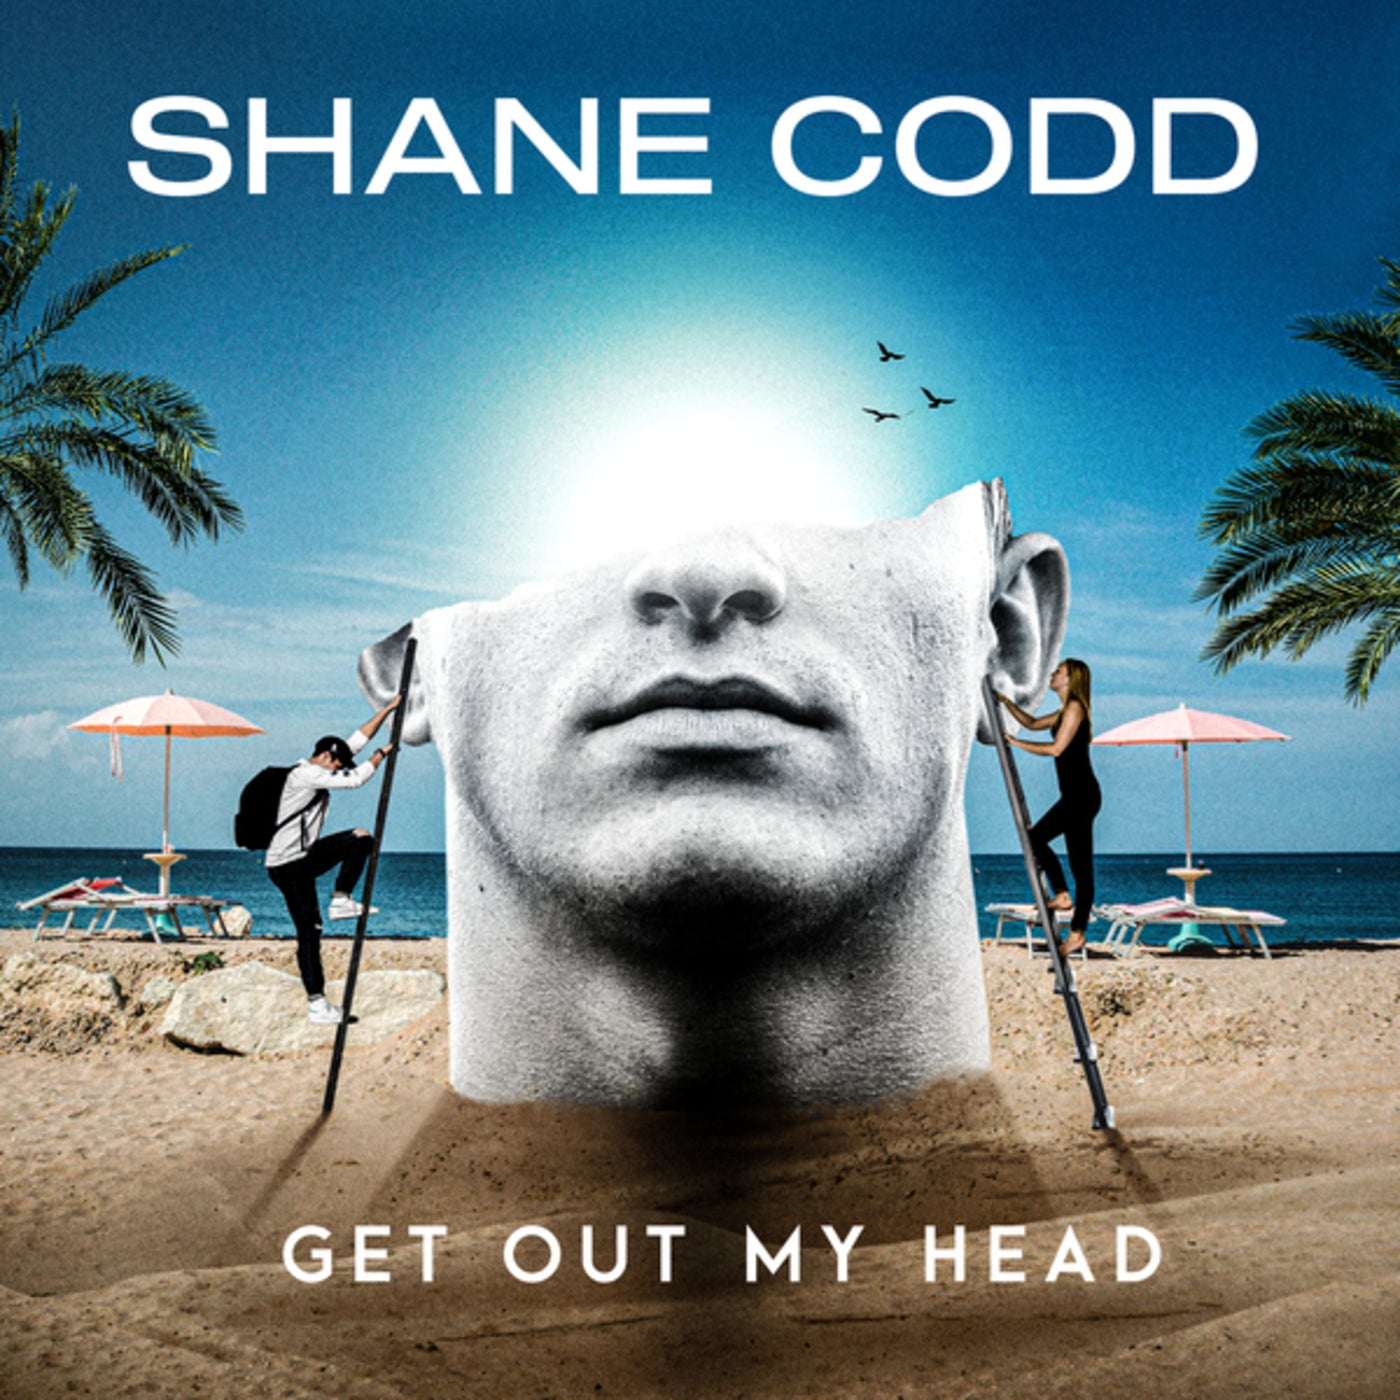 Get Out My Head (Extended Mix)